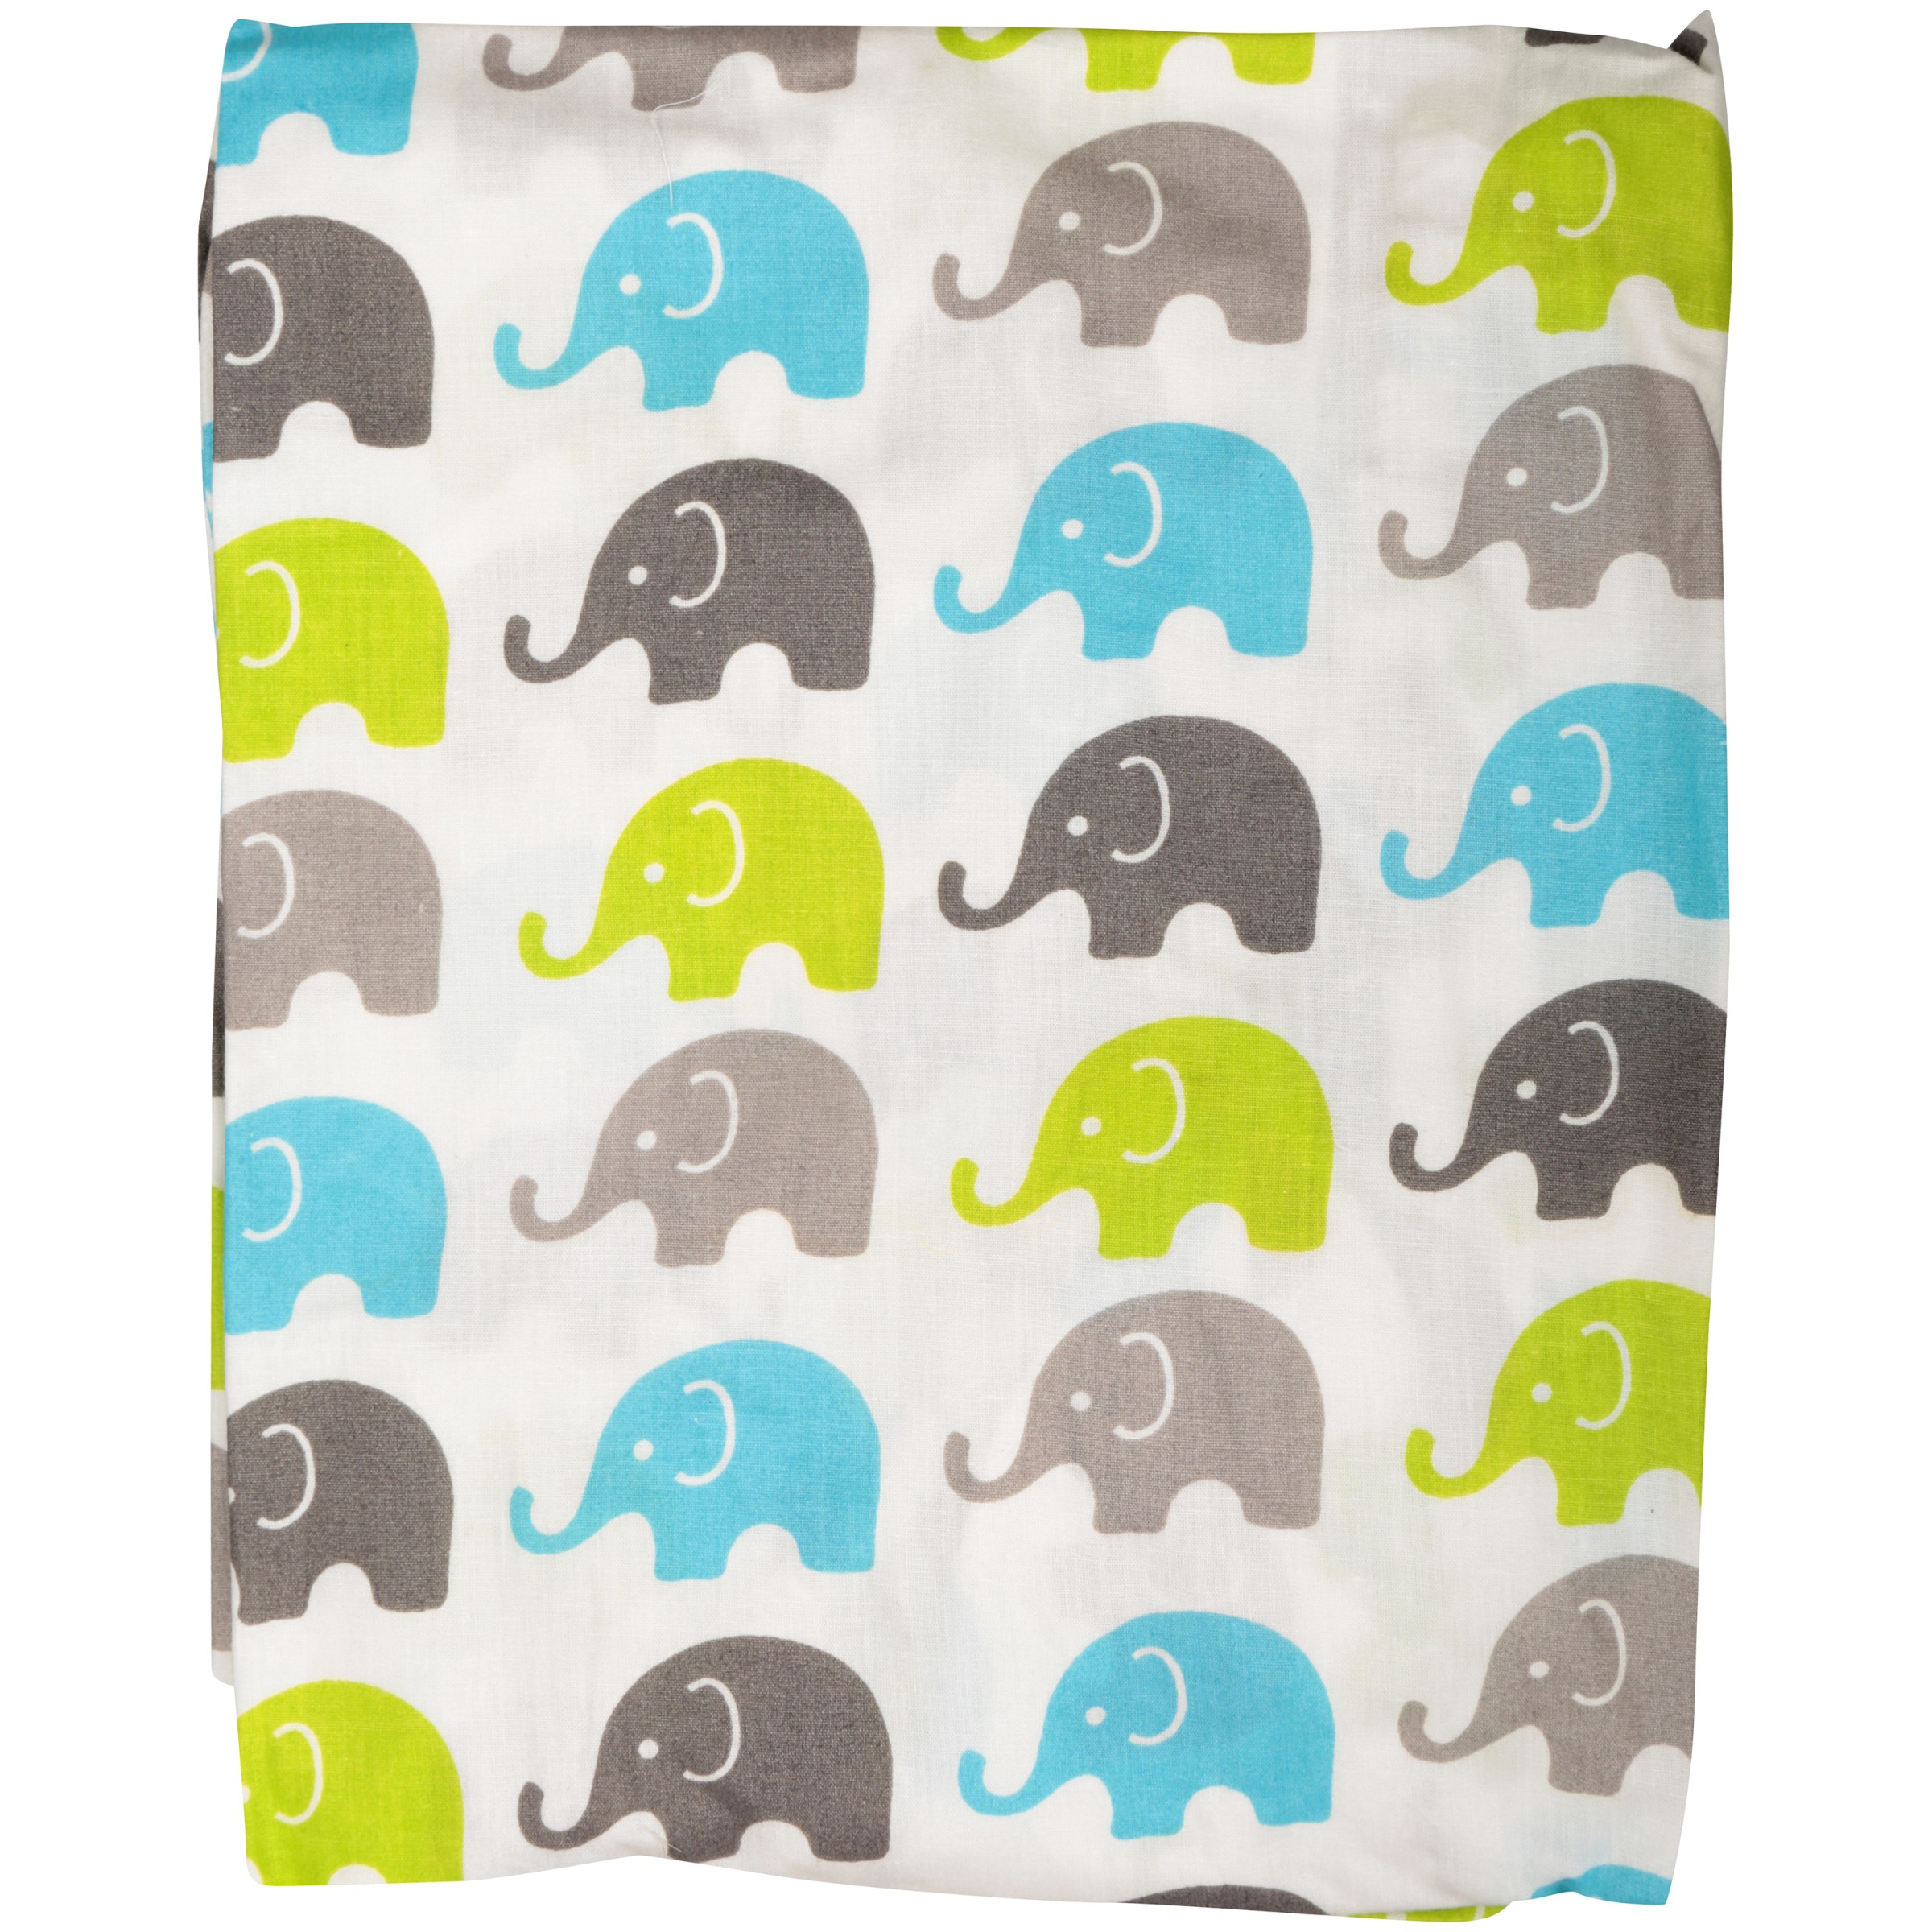 Bacati Aqua, Lime & Grey Mini Elephants Crib Fitted Sheets 2 ct Package